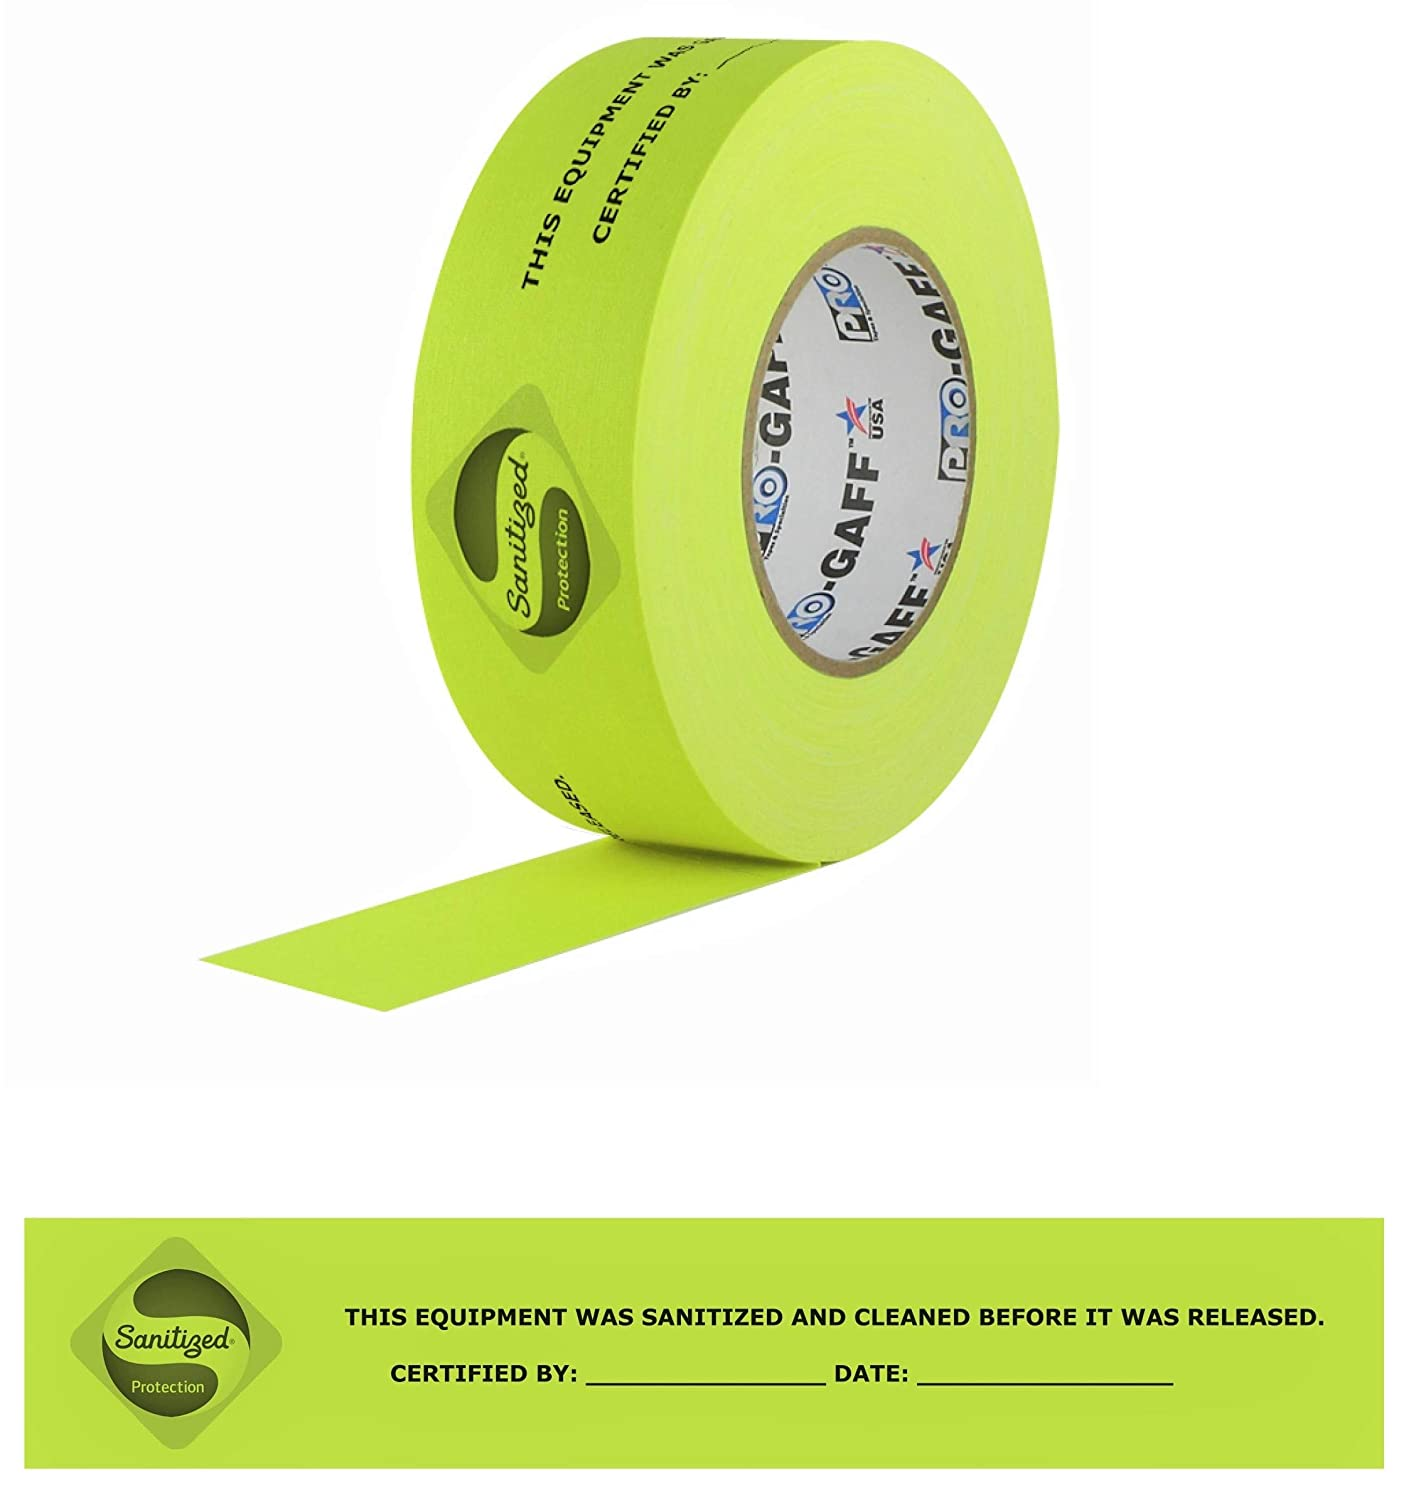 "Sanitized Sticker Safety Label Protection Tape, Warning, Certified, for Hospital, Office, Municipality, Government, Business, Equipment, Coronavirus, Covid-19, Florescent Yellow, 2"" x 25Yd. Roll, USA"